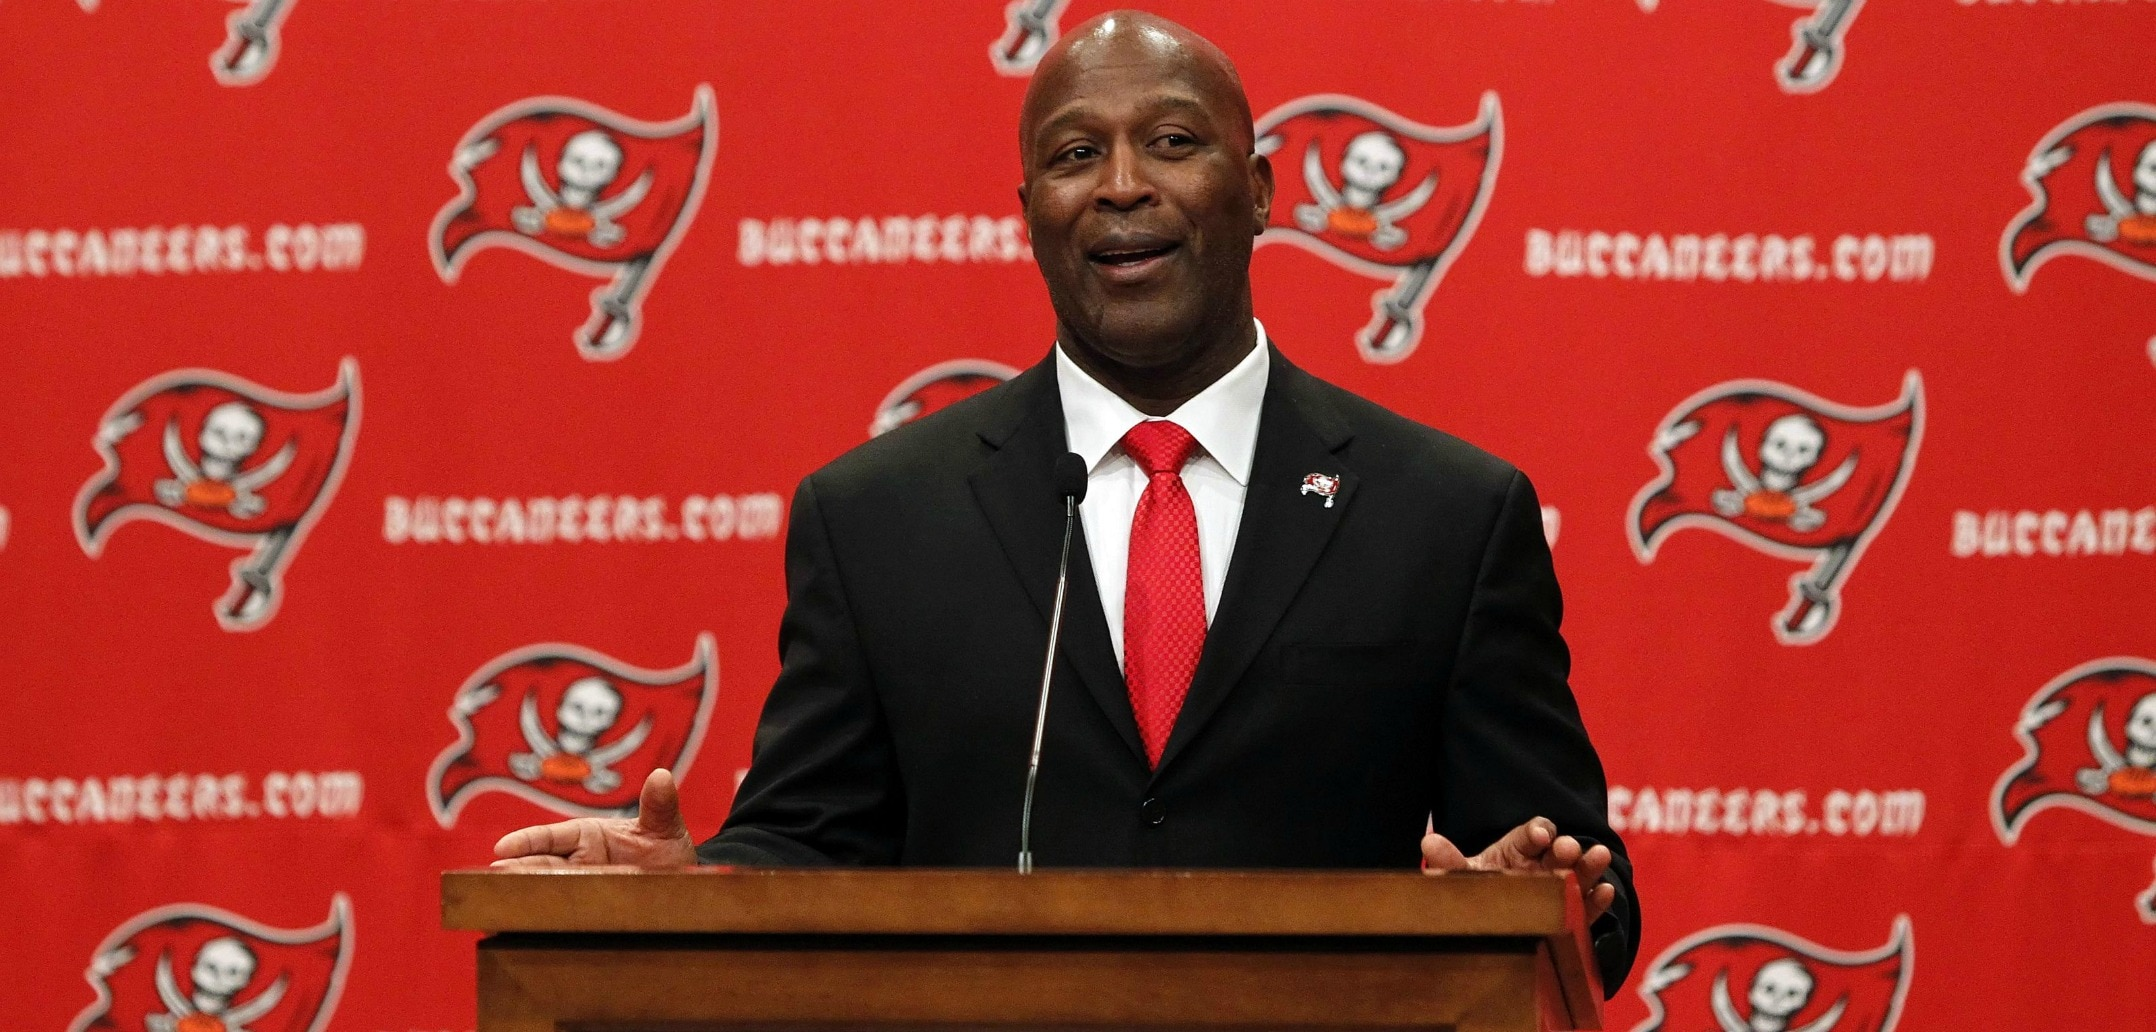 Courtesy of USA Today: Lovie Smith is a dramatic upgrade from a scheme standpoint over Greg Schiano.